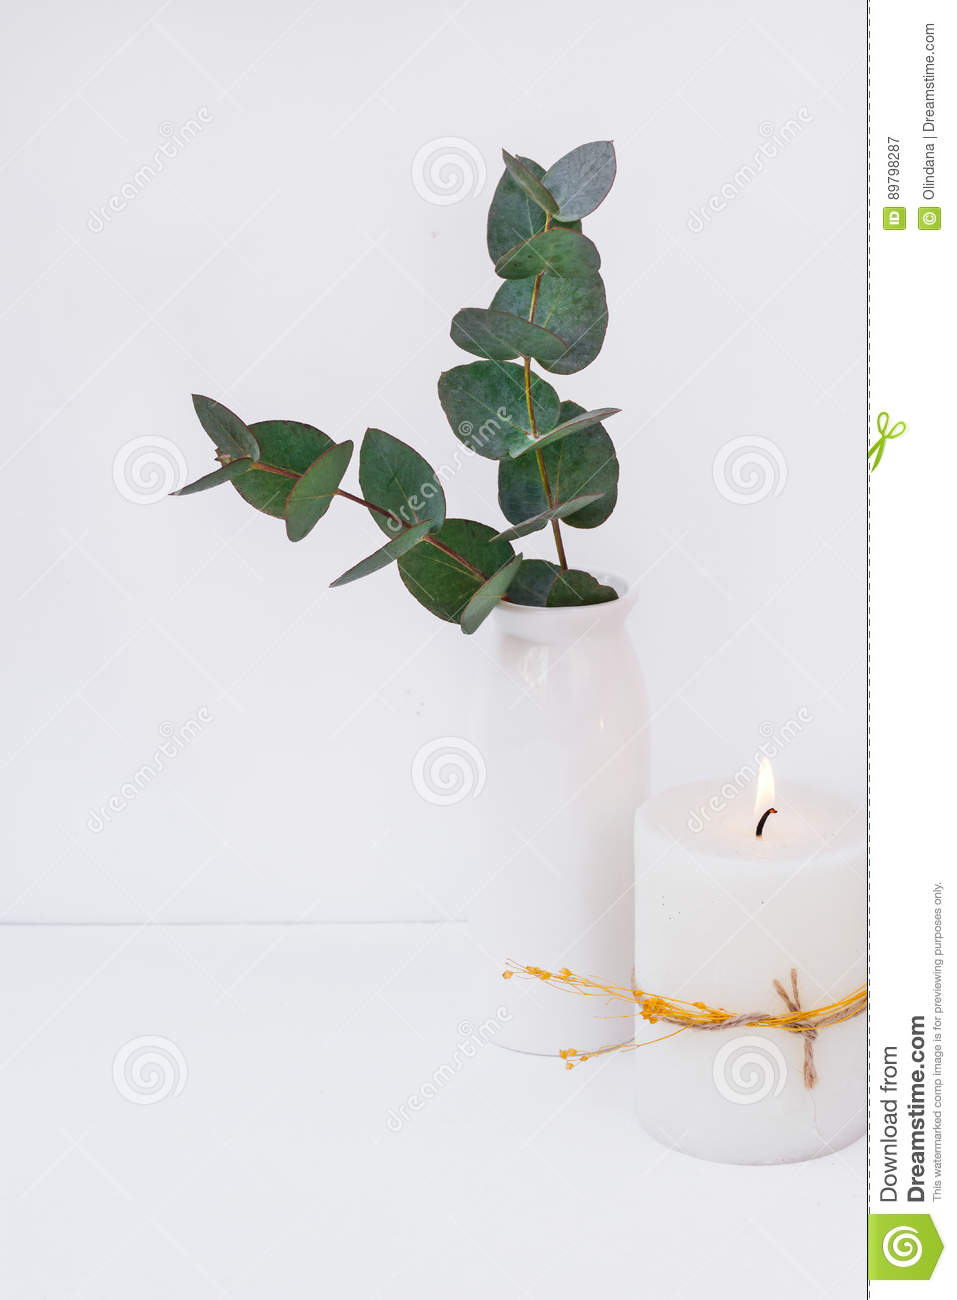 Branches of green silver dollar eucalyptus in ceramic vase, burning candle on white background, styled image